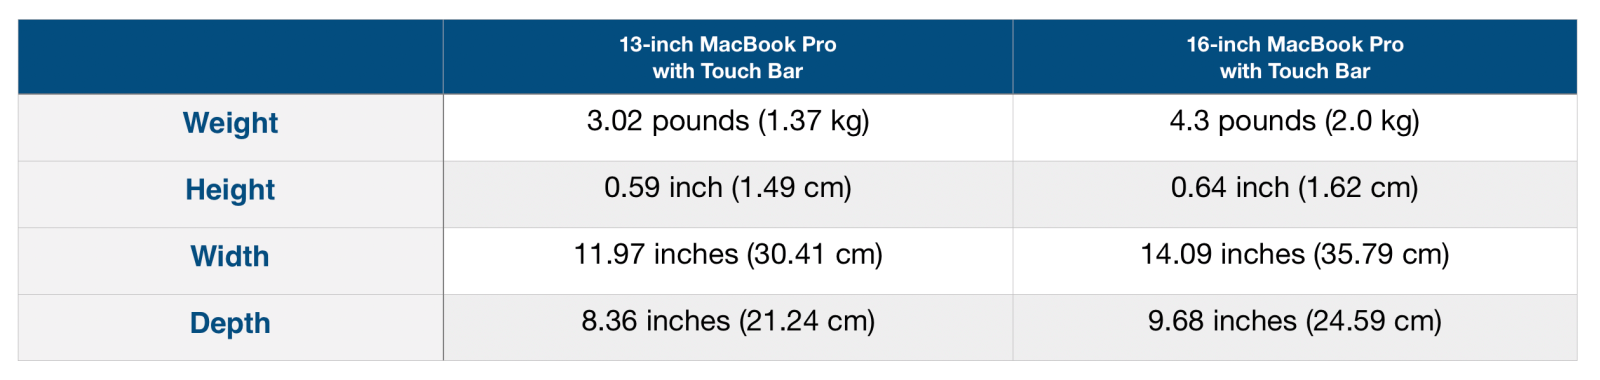 Table showing the demension differences between 13-inch Pro and 16-inch Pro Table courtest of 9to5mac.